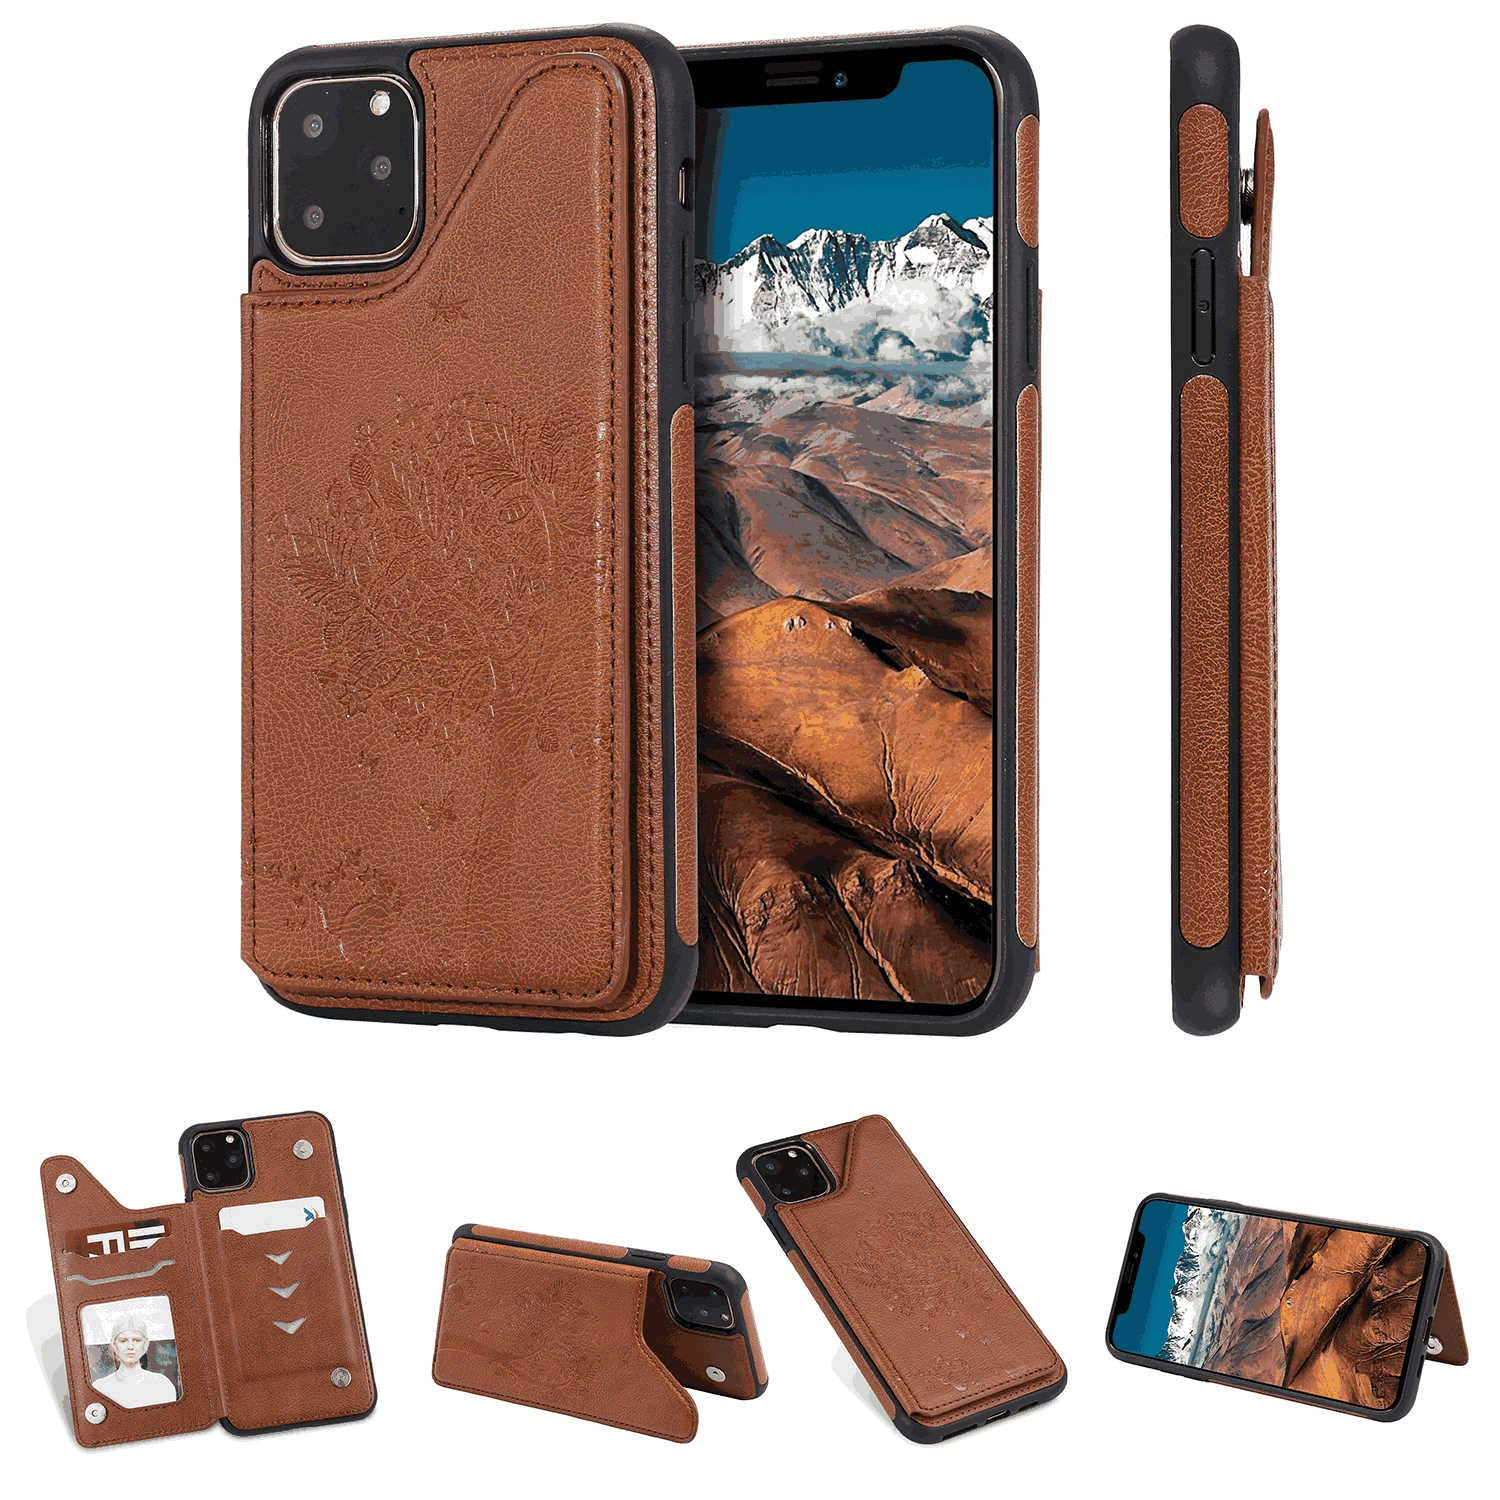 Huawei Mate30 Flip Case Cover for Huawei Mate30 Leather Cell Phone Cover Card Holders Extra-Protective Business Kickstand with Free Waterproof-Bag